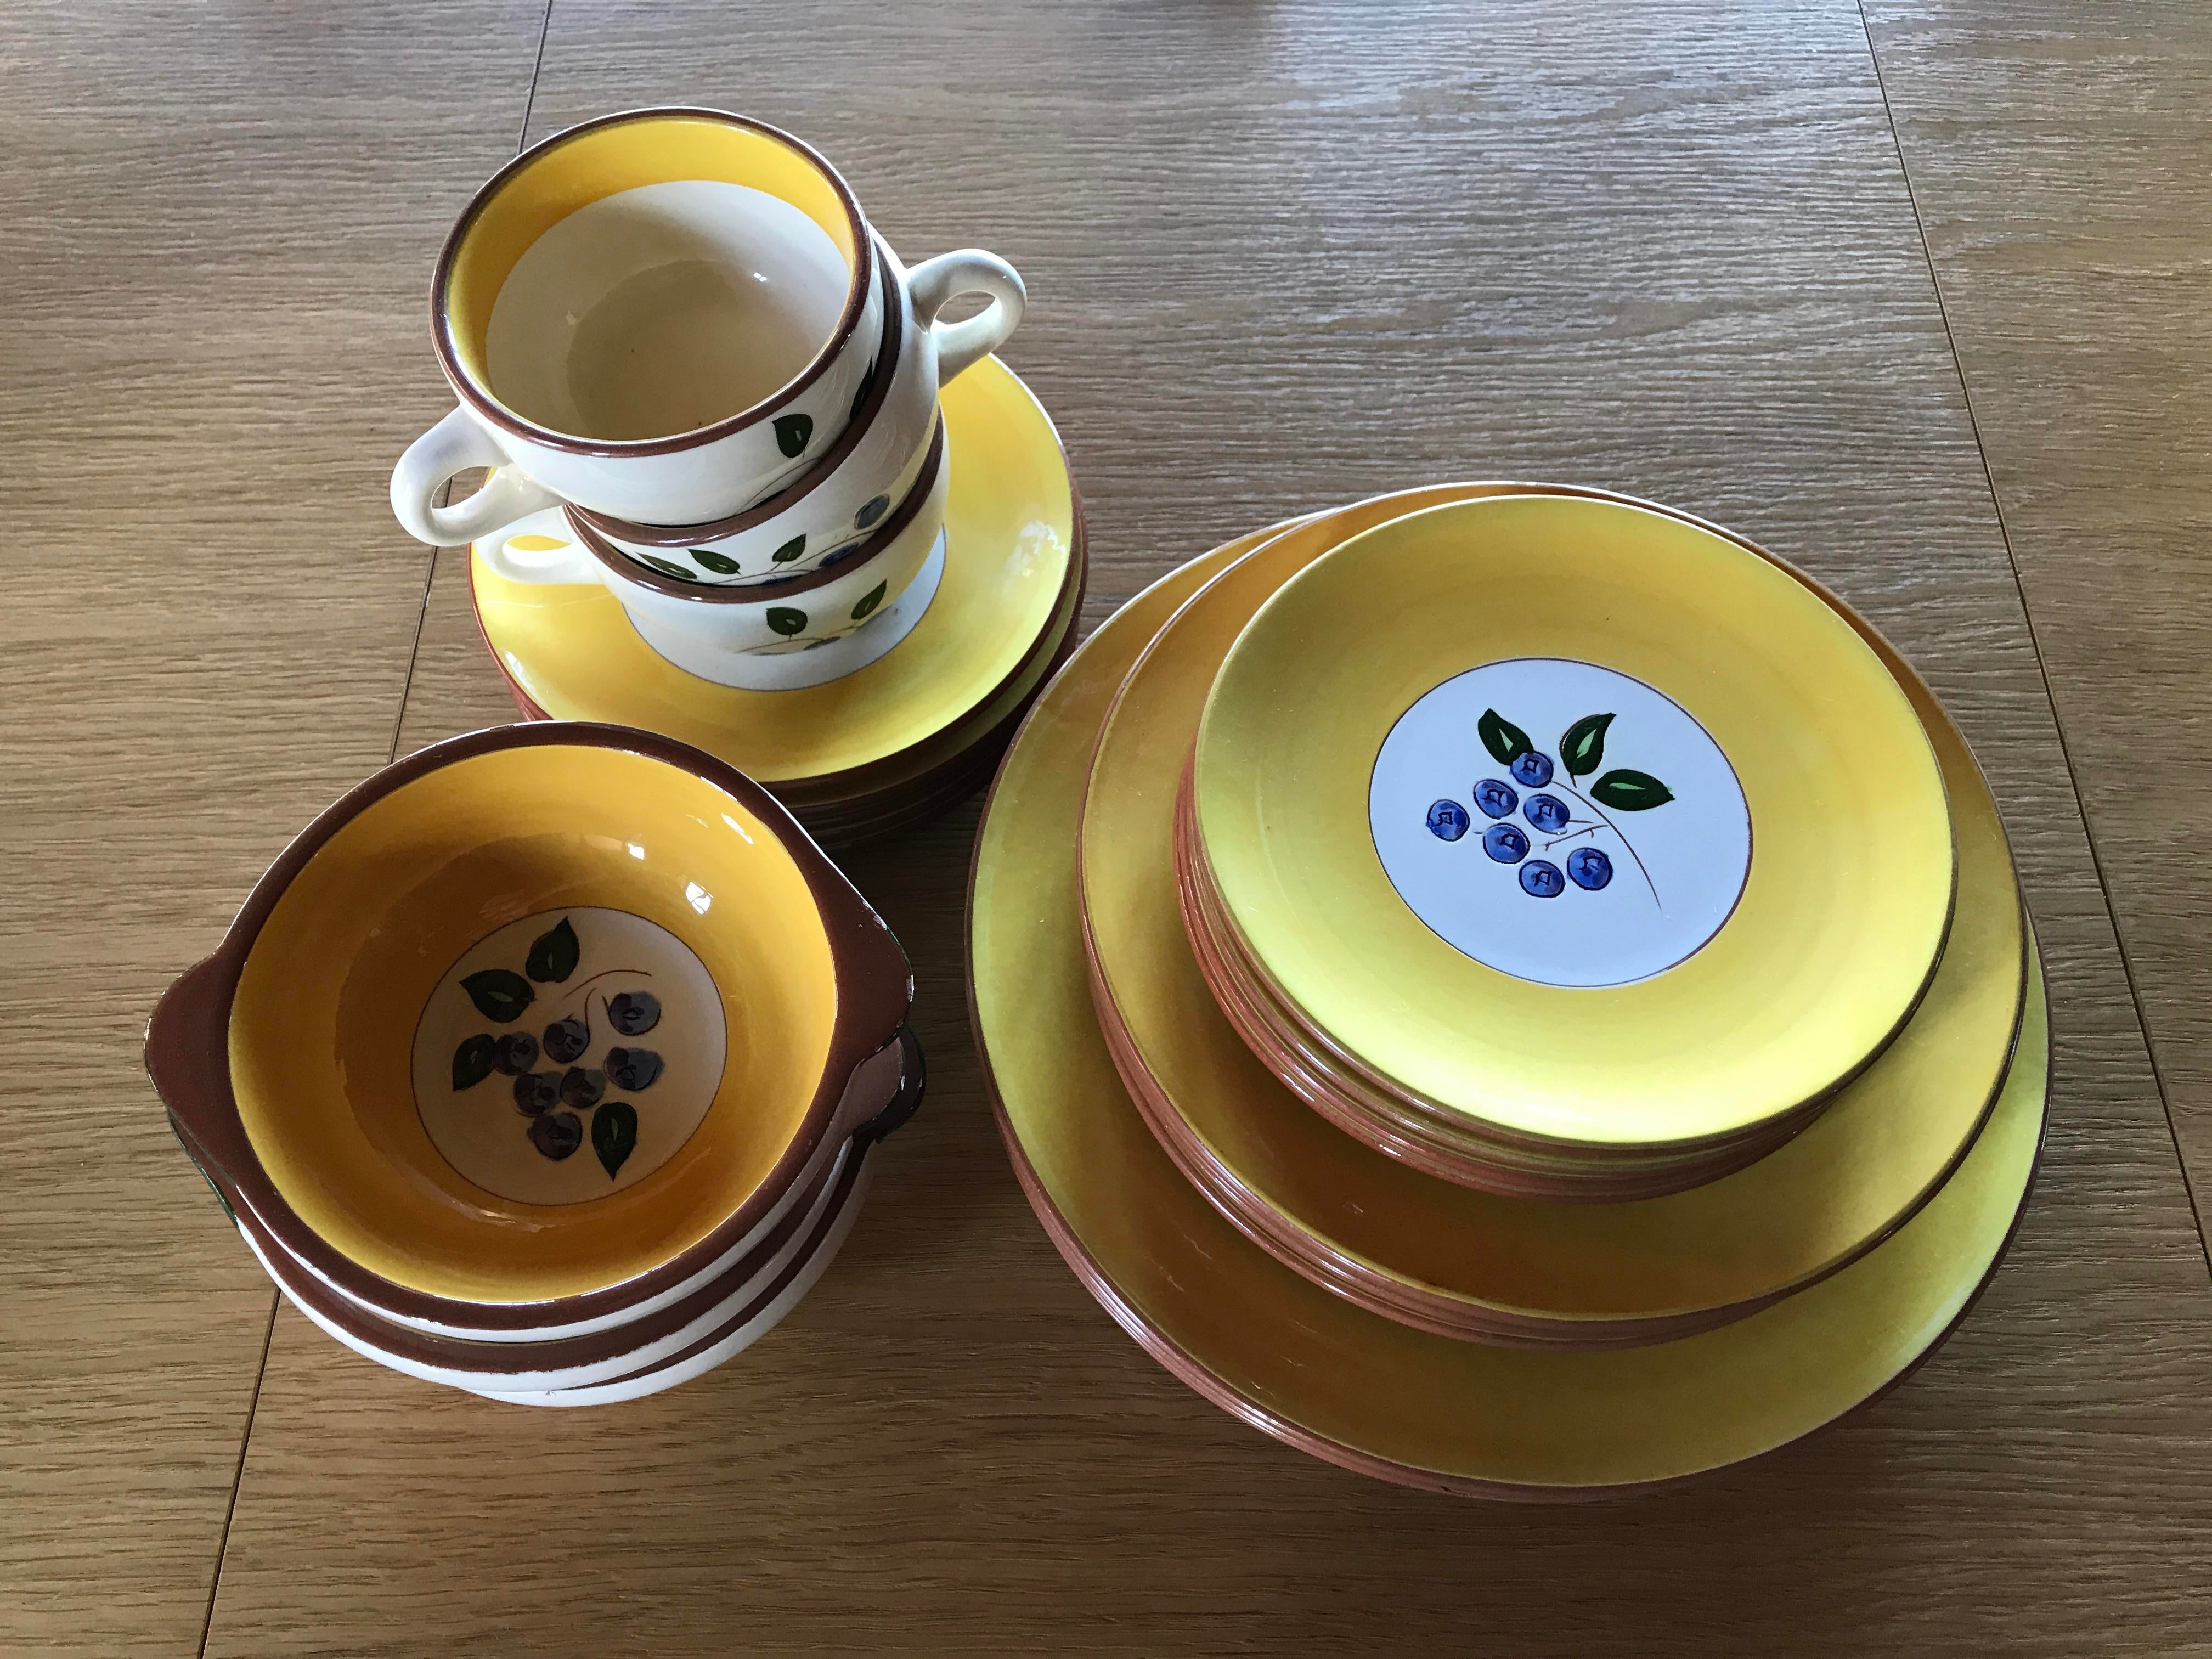 Stangl Pottery Blueberry Motif Yellow Dinnerware - Set of 22 - Image 2 of 10  sc 1 st  Chairish & Stangl Pottery Blueberry Motif Yellow Dinnerware - Set of 22 | Chairish